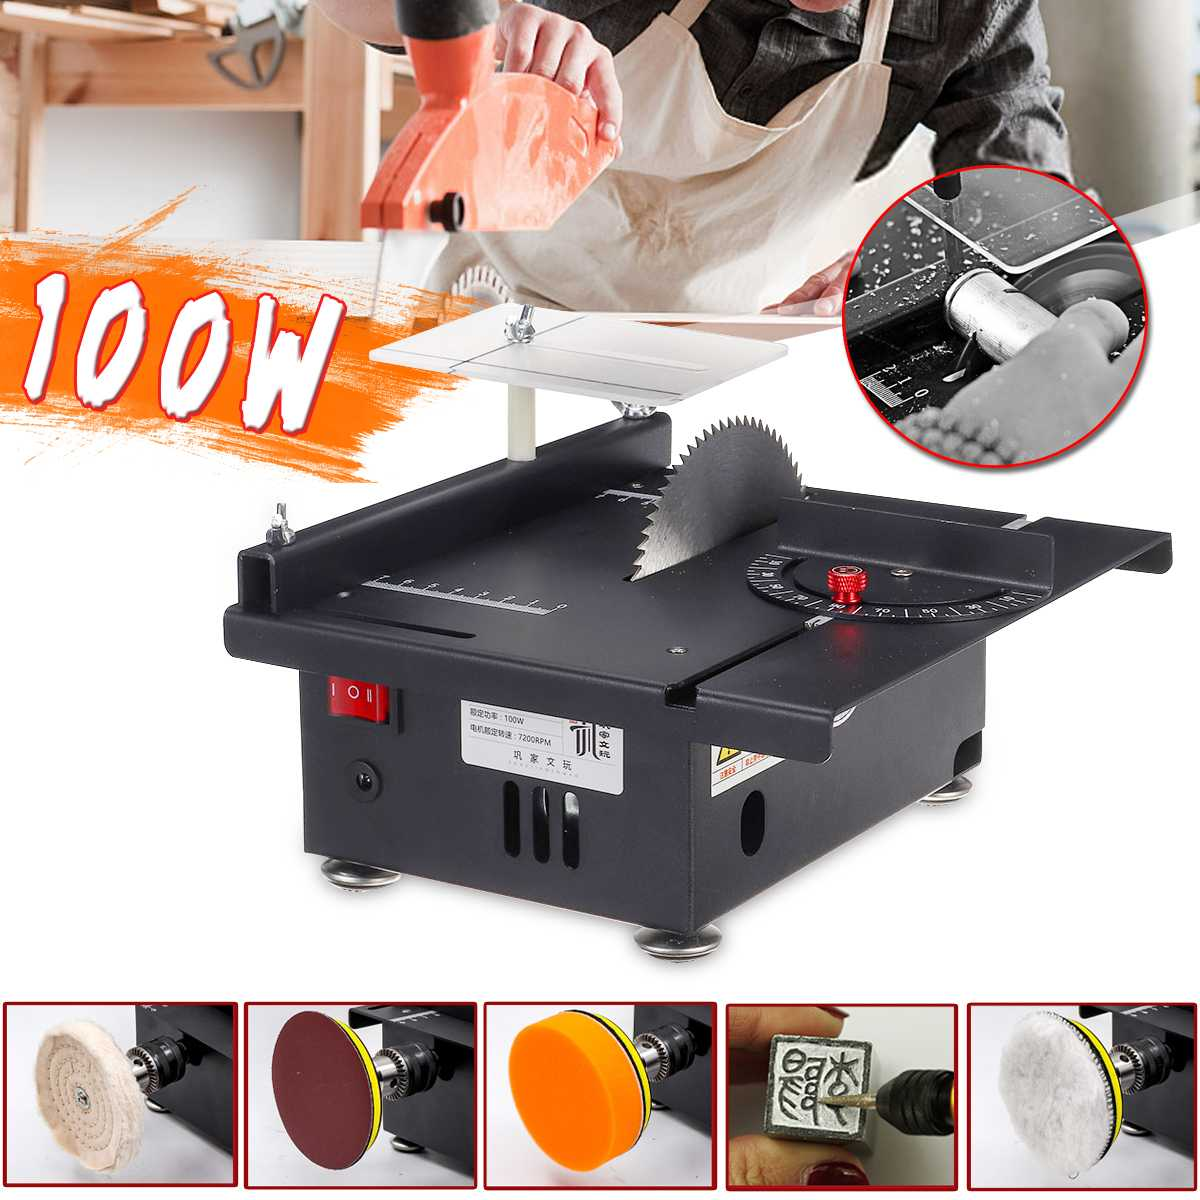 Mini Electric Table Saw Woodworking Bench Saw Grinder Handmade Hobby Model Crafts Cutting Tool with Power Circular Saw Blade Pakistan